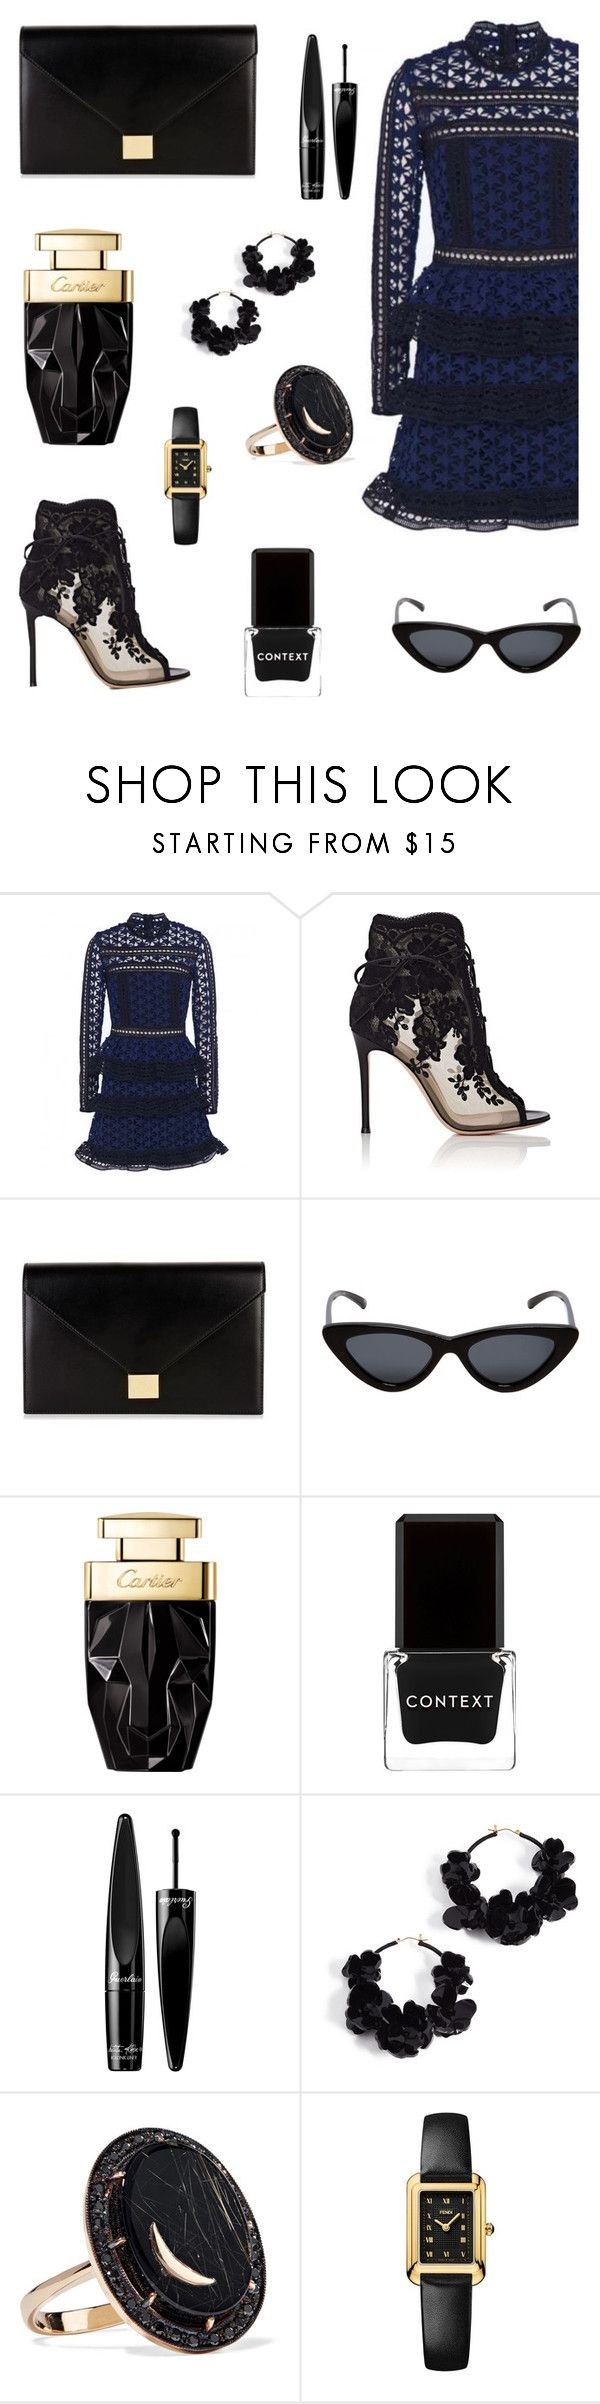 """""""new york new york"""" by the-vintage-palace2016 ❤ liked on Polyvore featuring Gianvito Rossi, Victoria Beckham, Le Specs, Context, Guerlain, Oscar de la Renta, Andrea Fohrman and Fendi"""